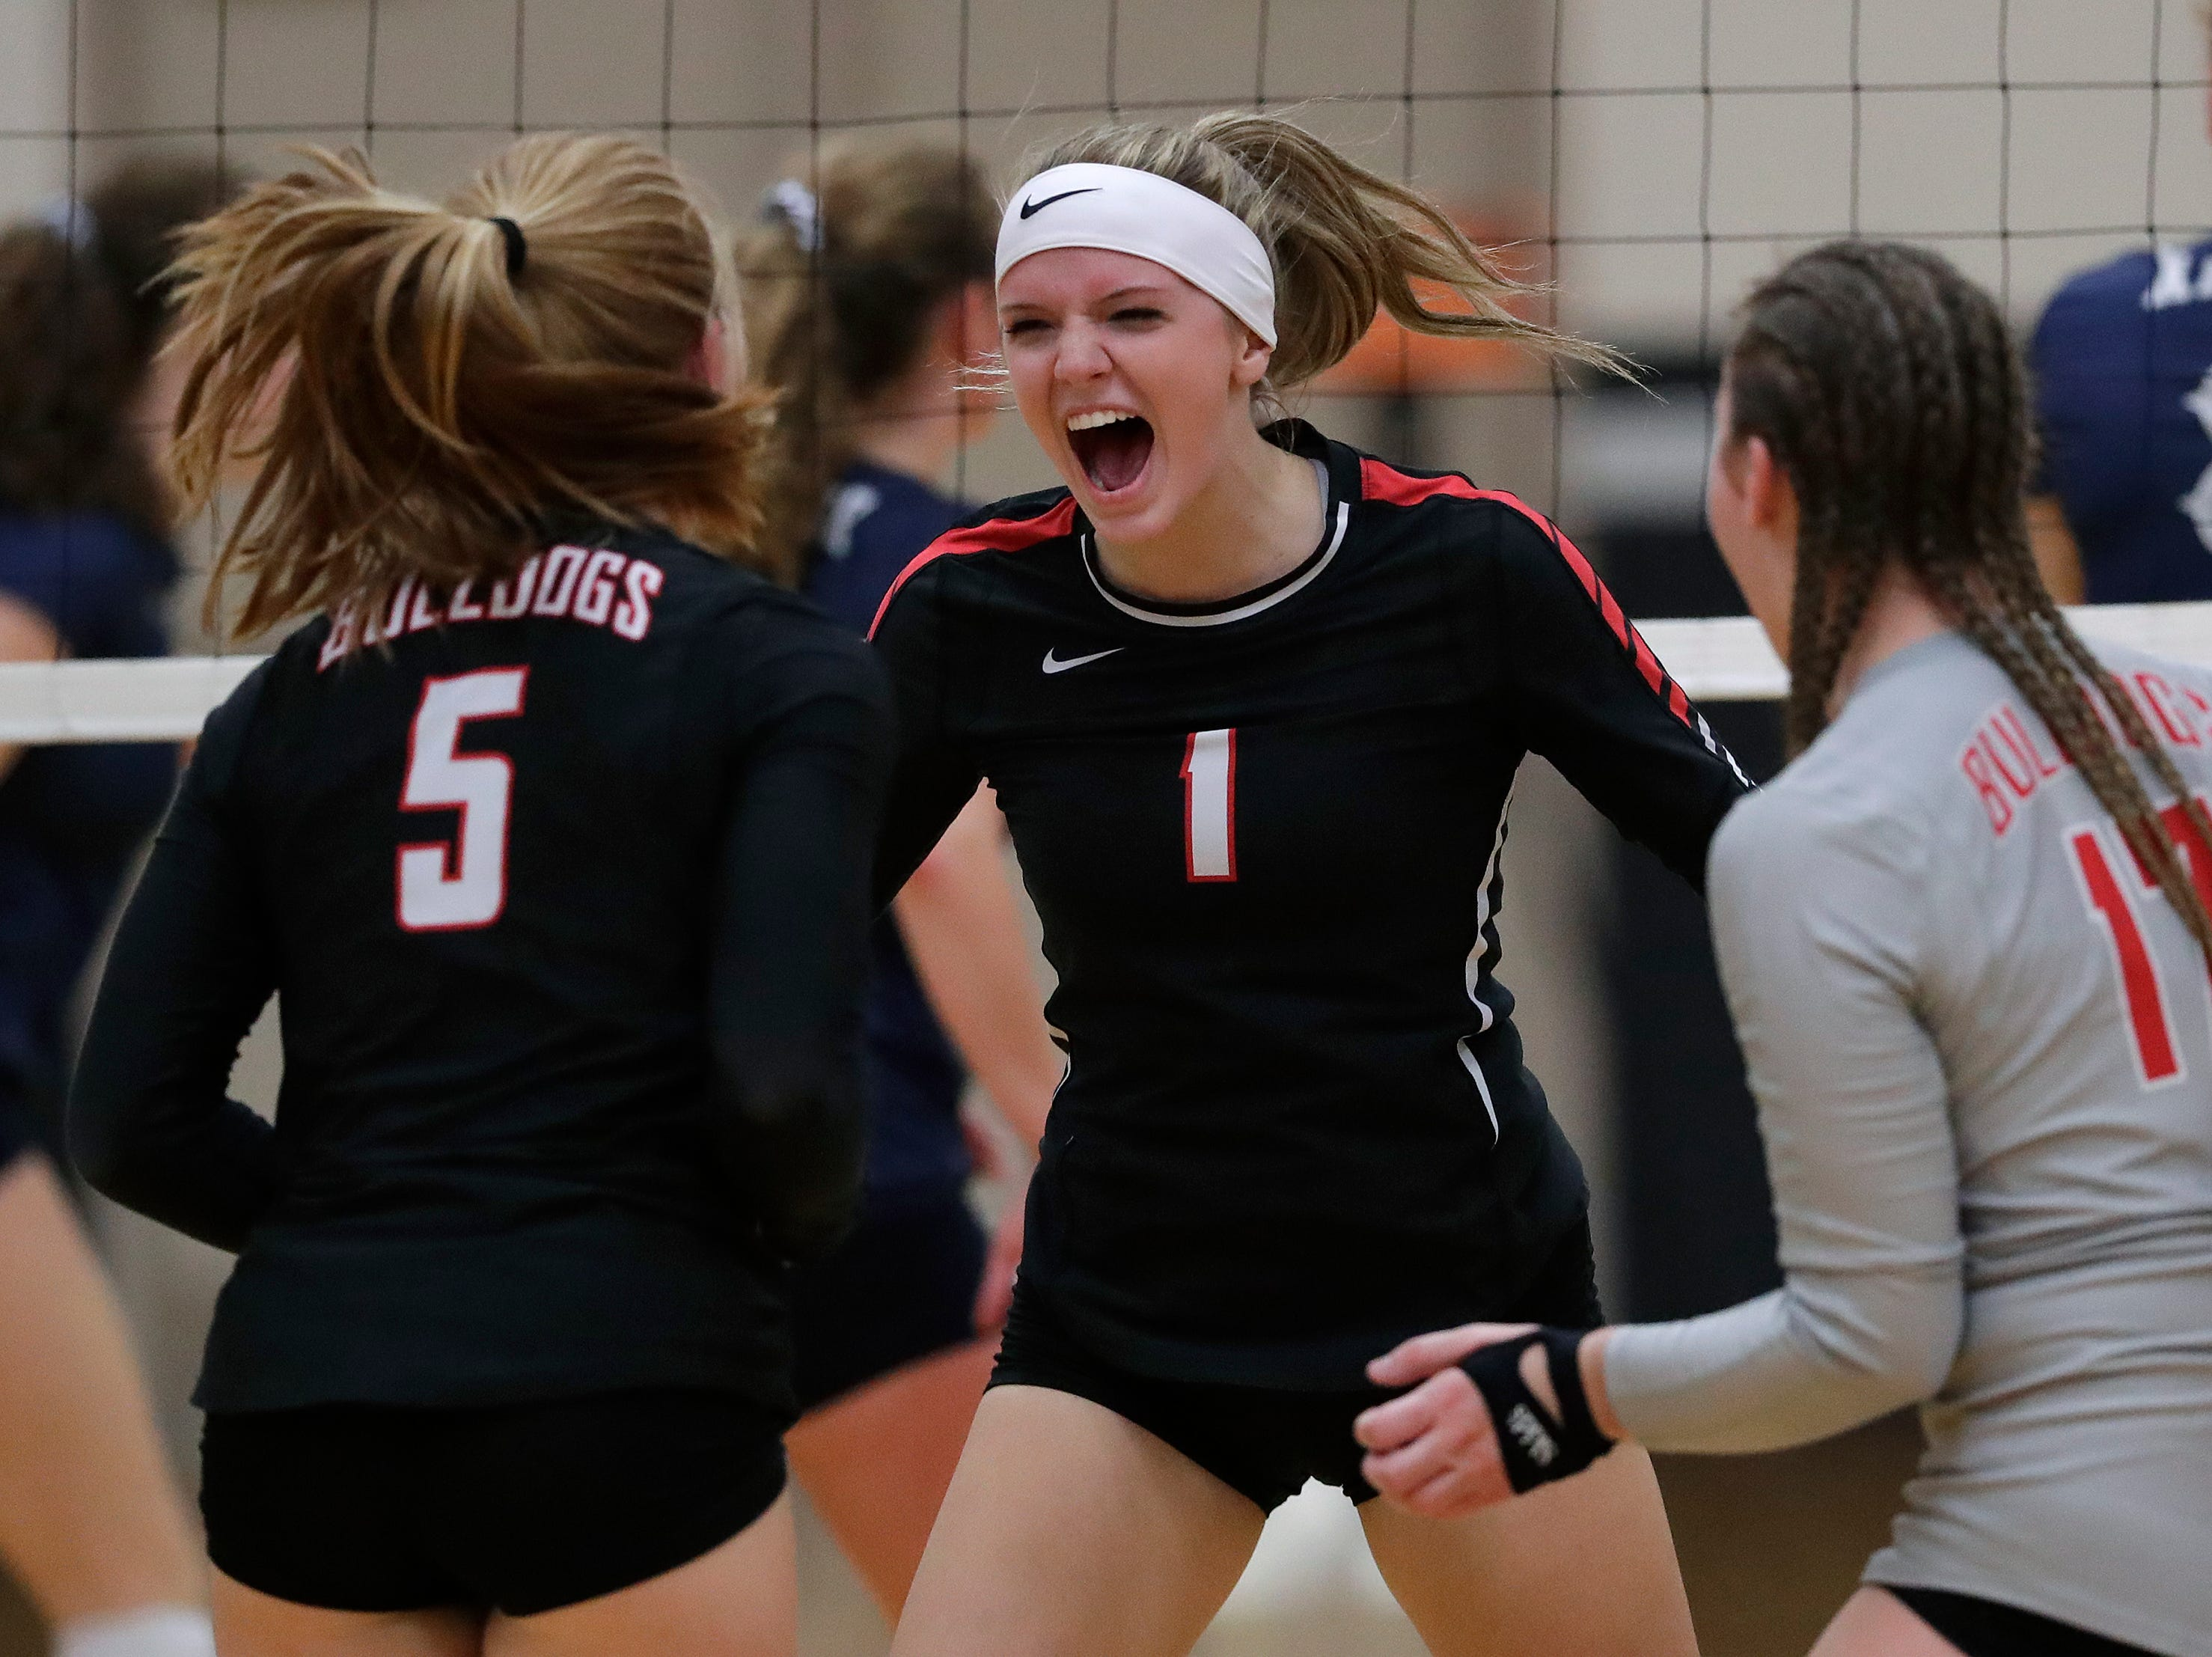 New London High School's Abbi Gillespie (5), Marissa Messina (1) and Emmea Blum (17) celebrate winning a point against Xavier High School during their girls volleyball match Thursday, Sept. 13, 2018, in Appleton, Wis. 